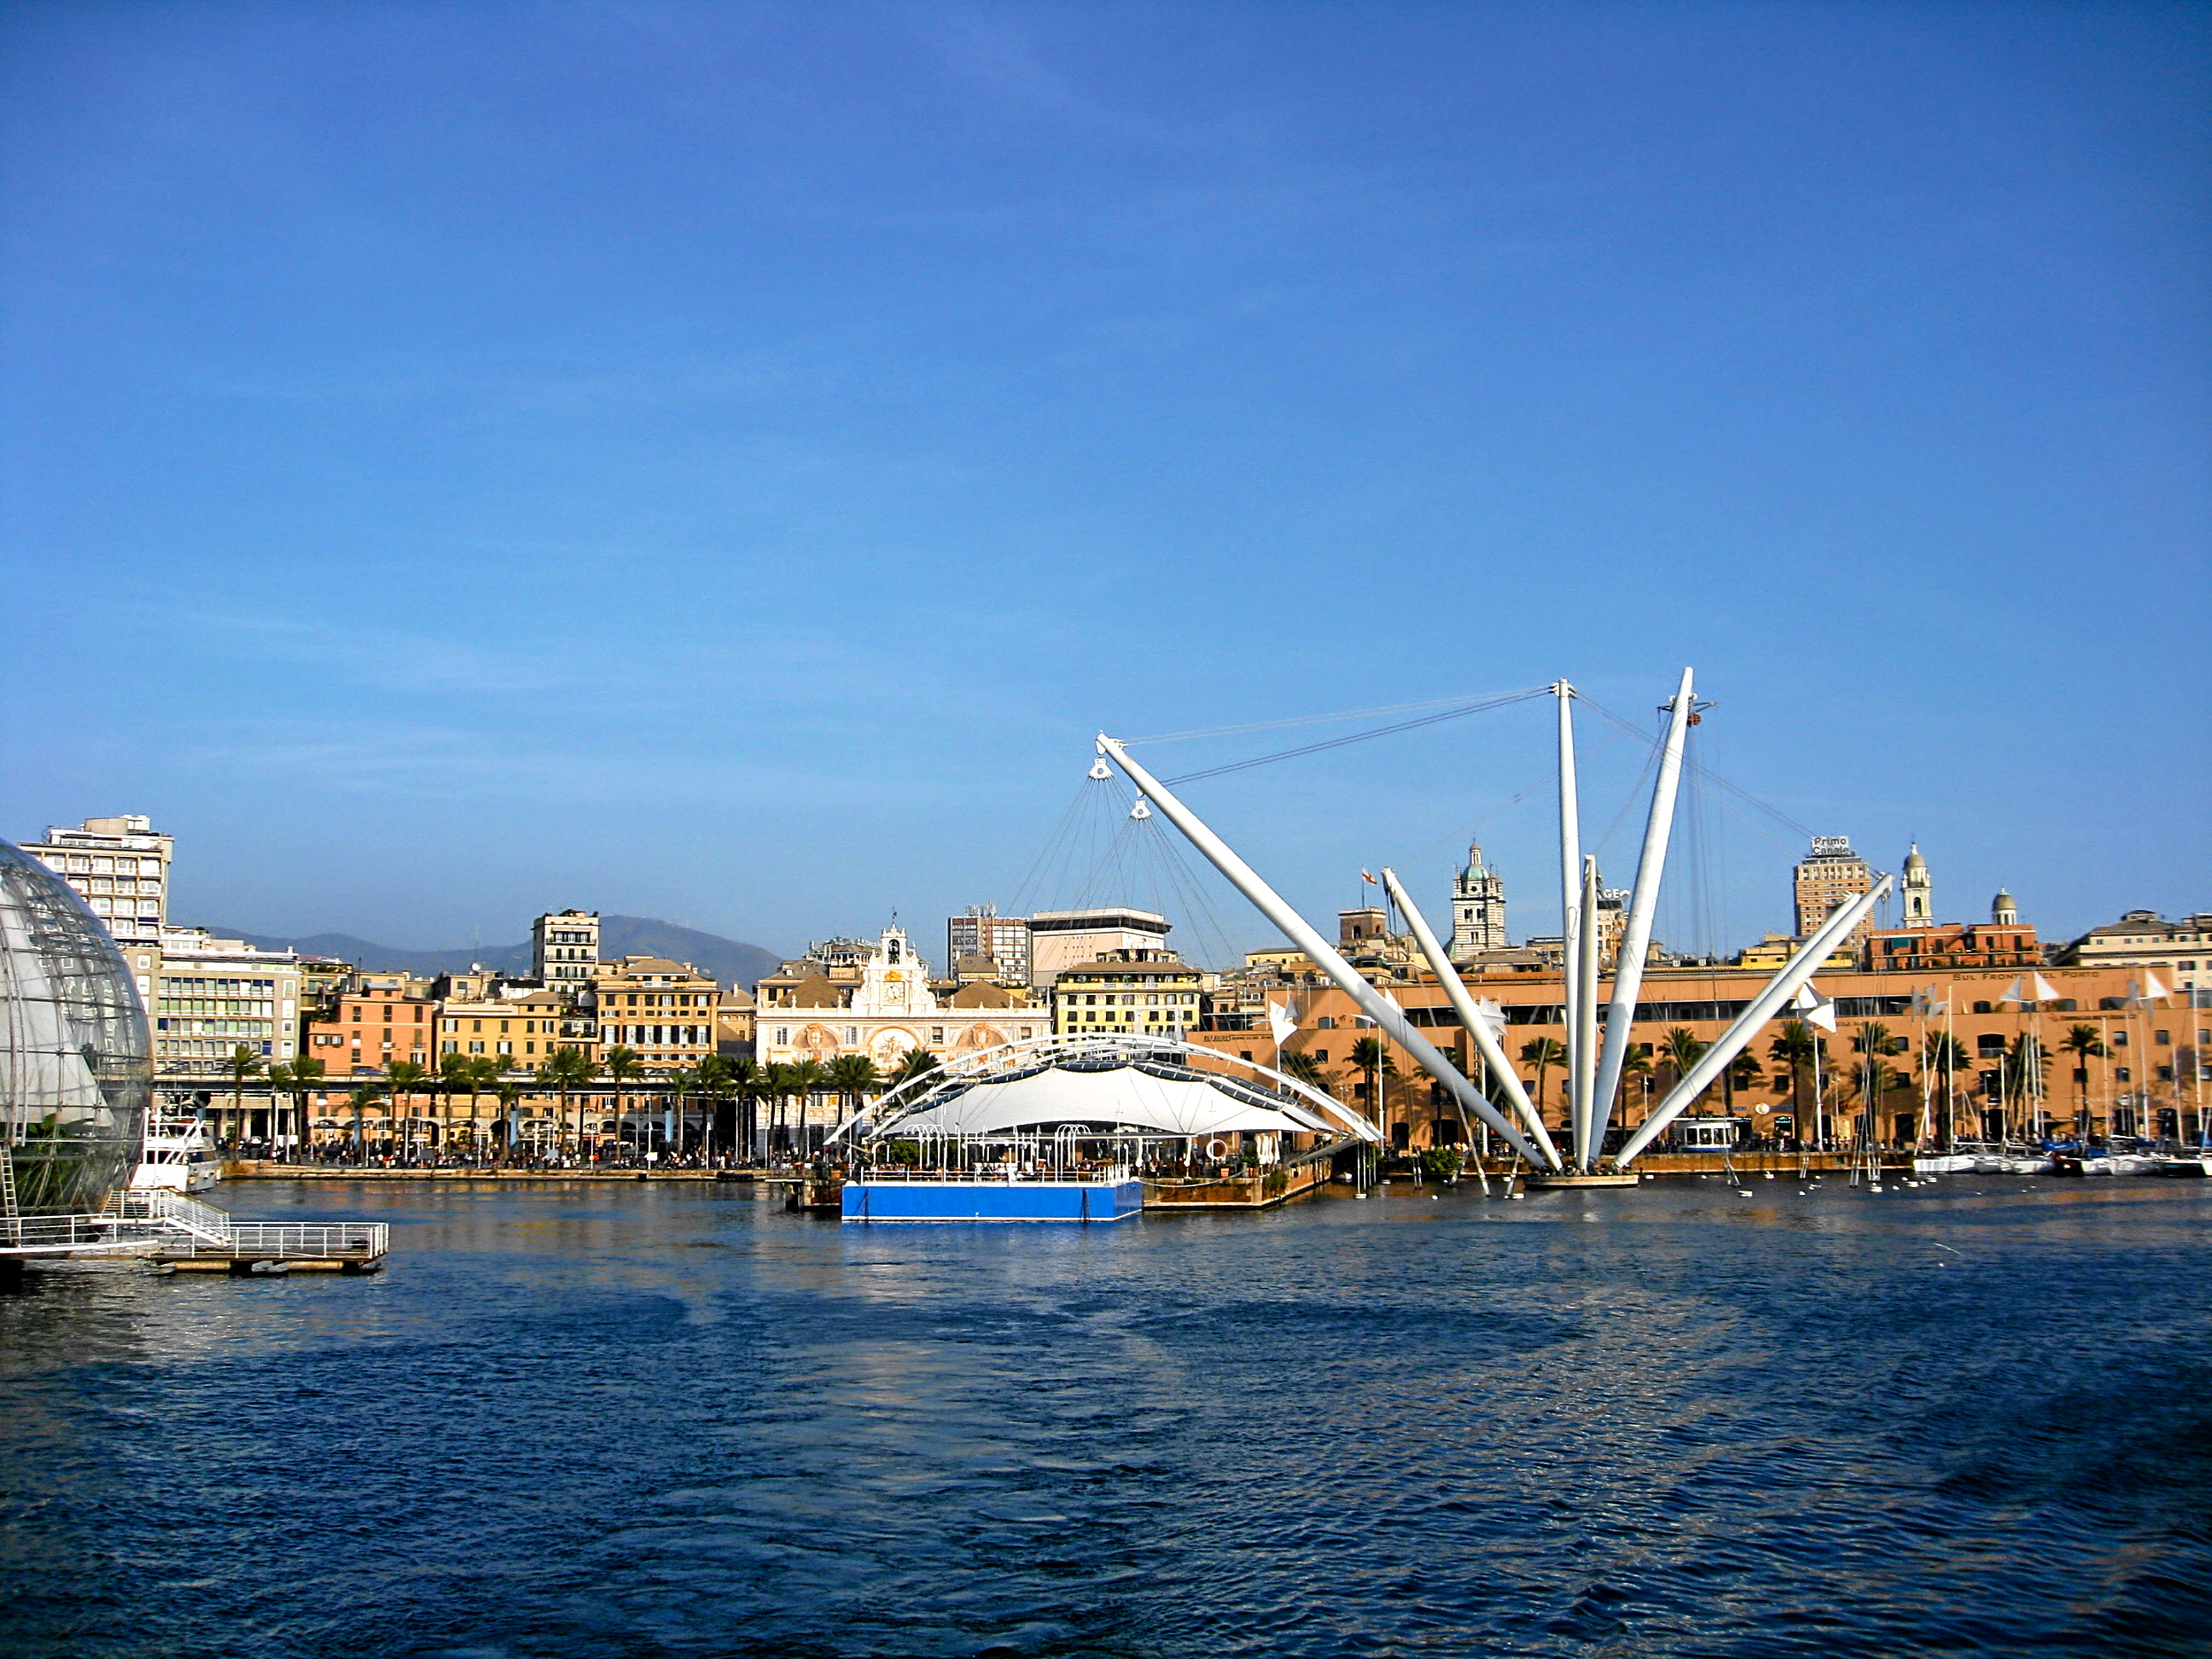 Genoa waterfront